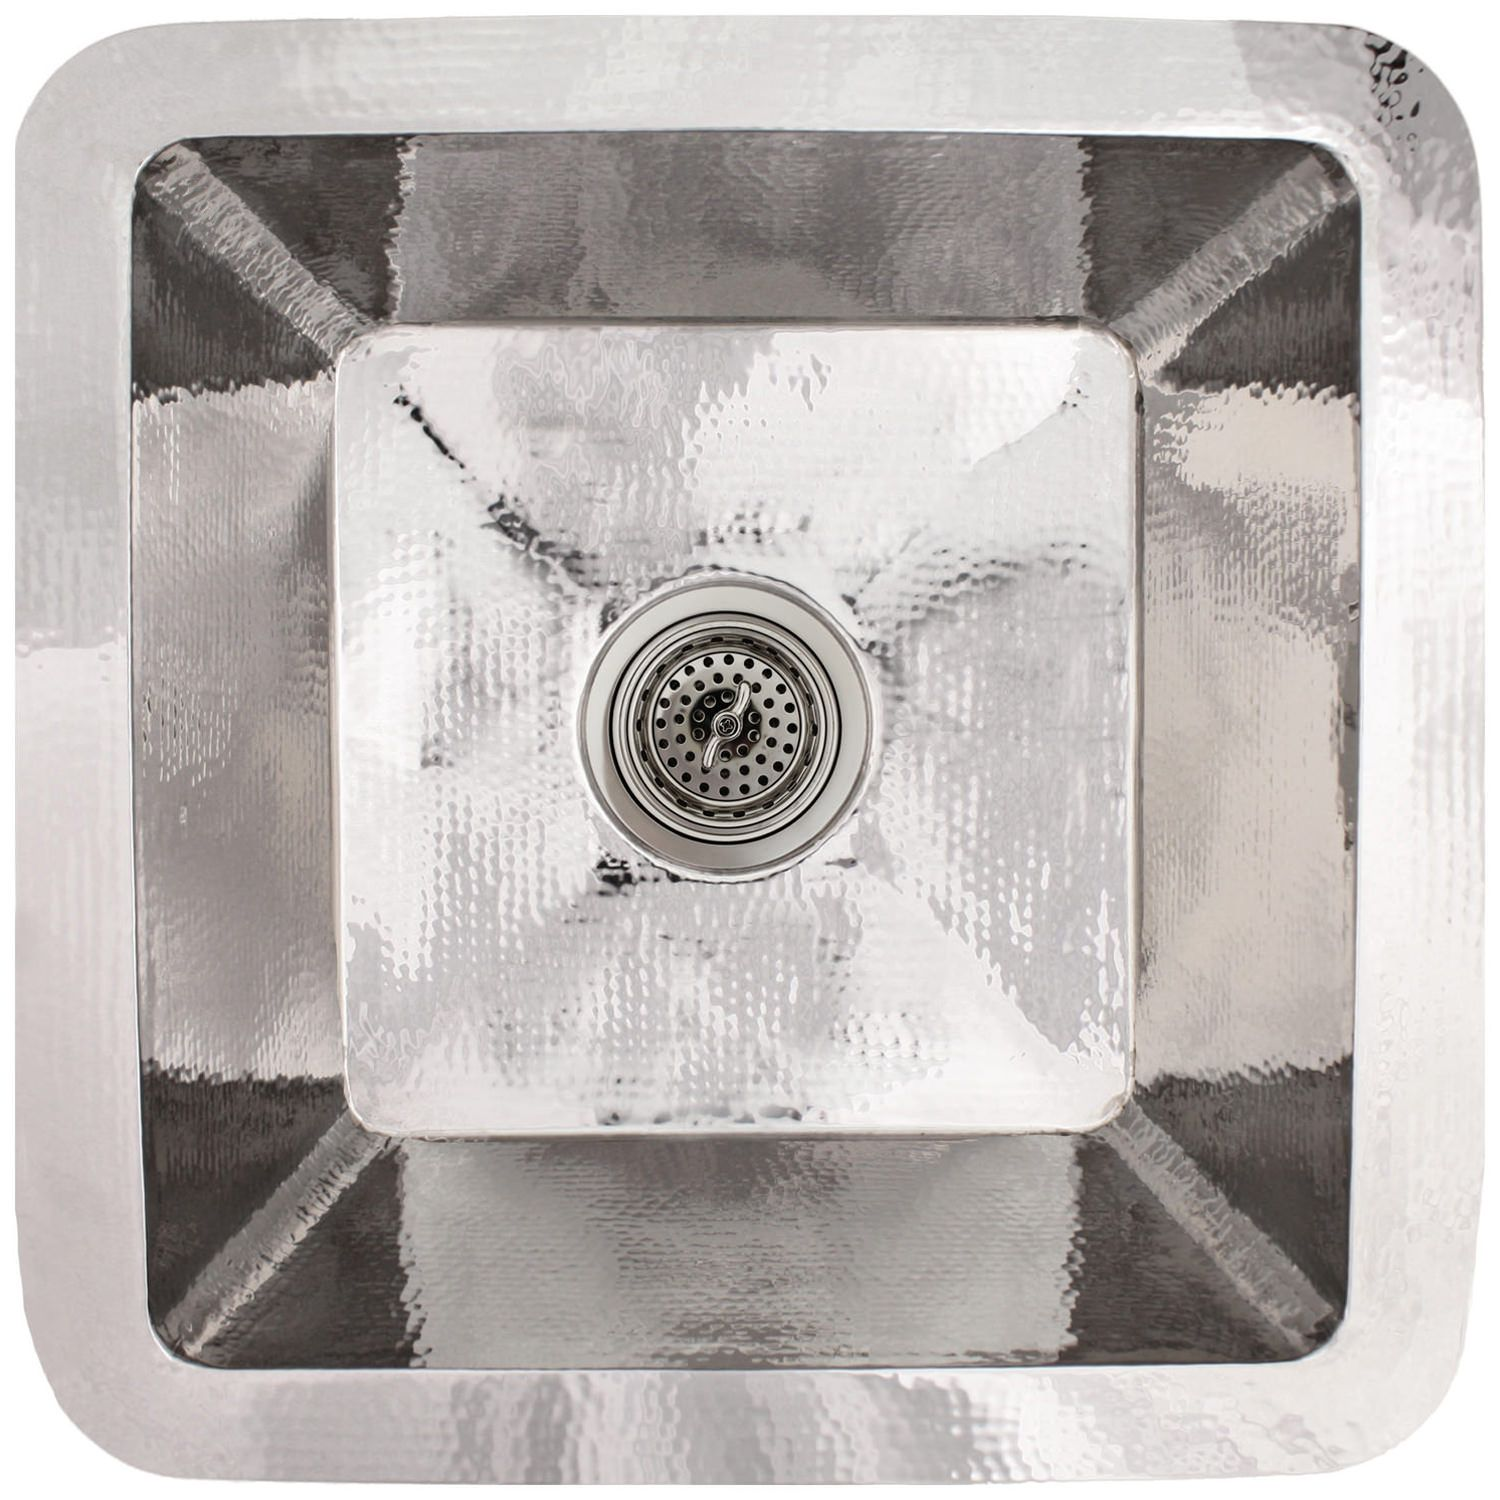 "Linkasink Kitchen Sinks - C008-PS Stainless Steel - Large Square Prep Sink - 3.5"" drain - Polished"